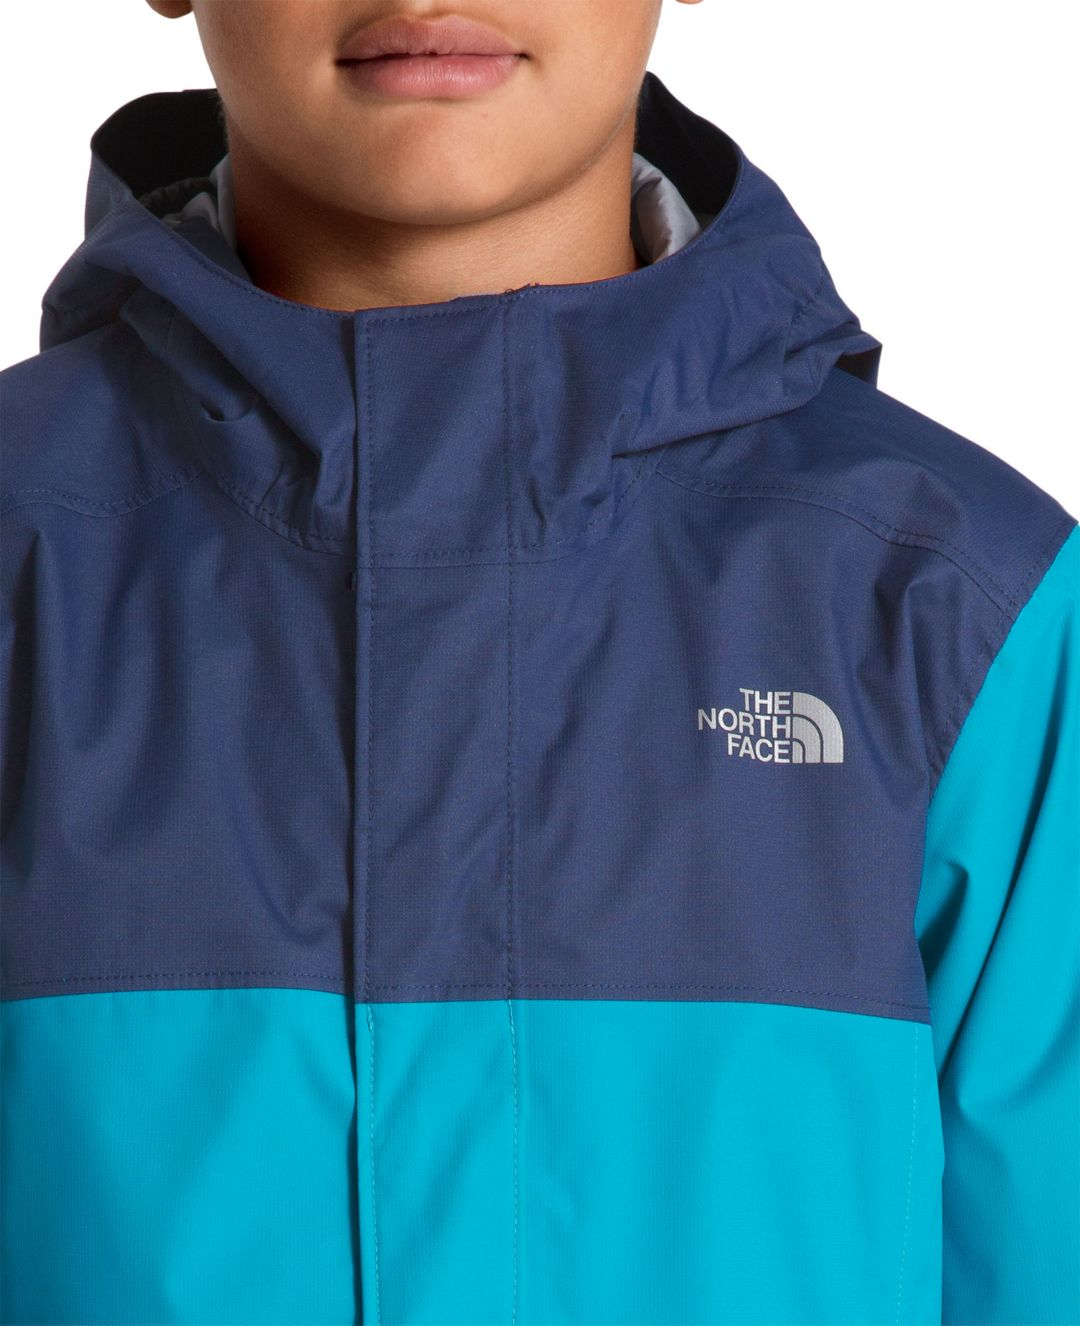 ad466d4f3 The North Face Boys' Resolve Reflective Jacket